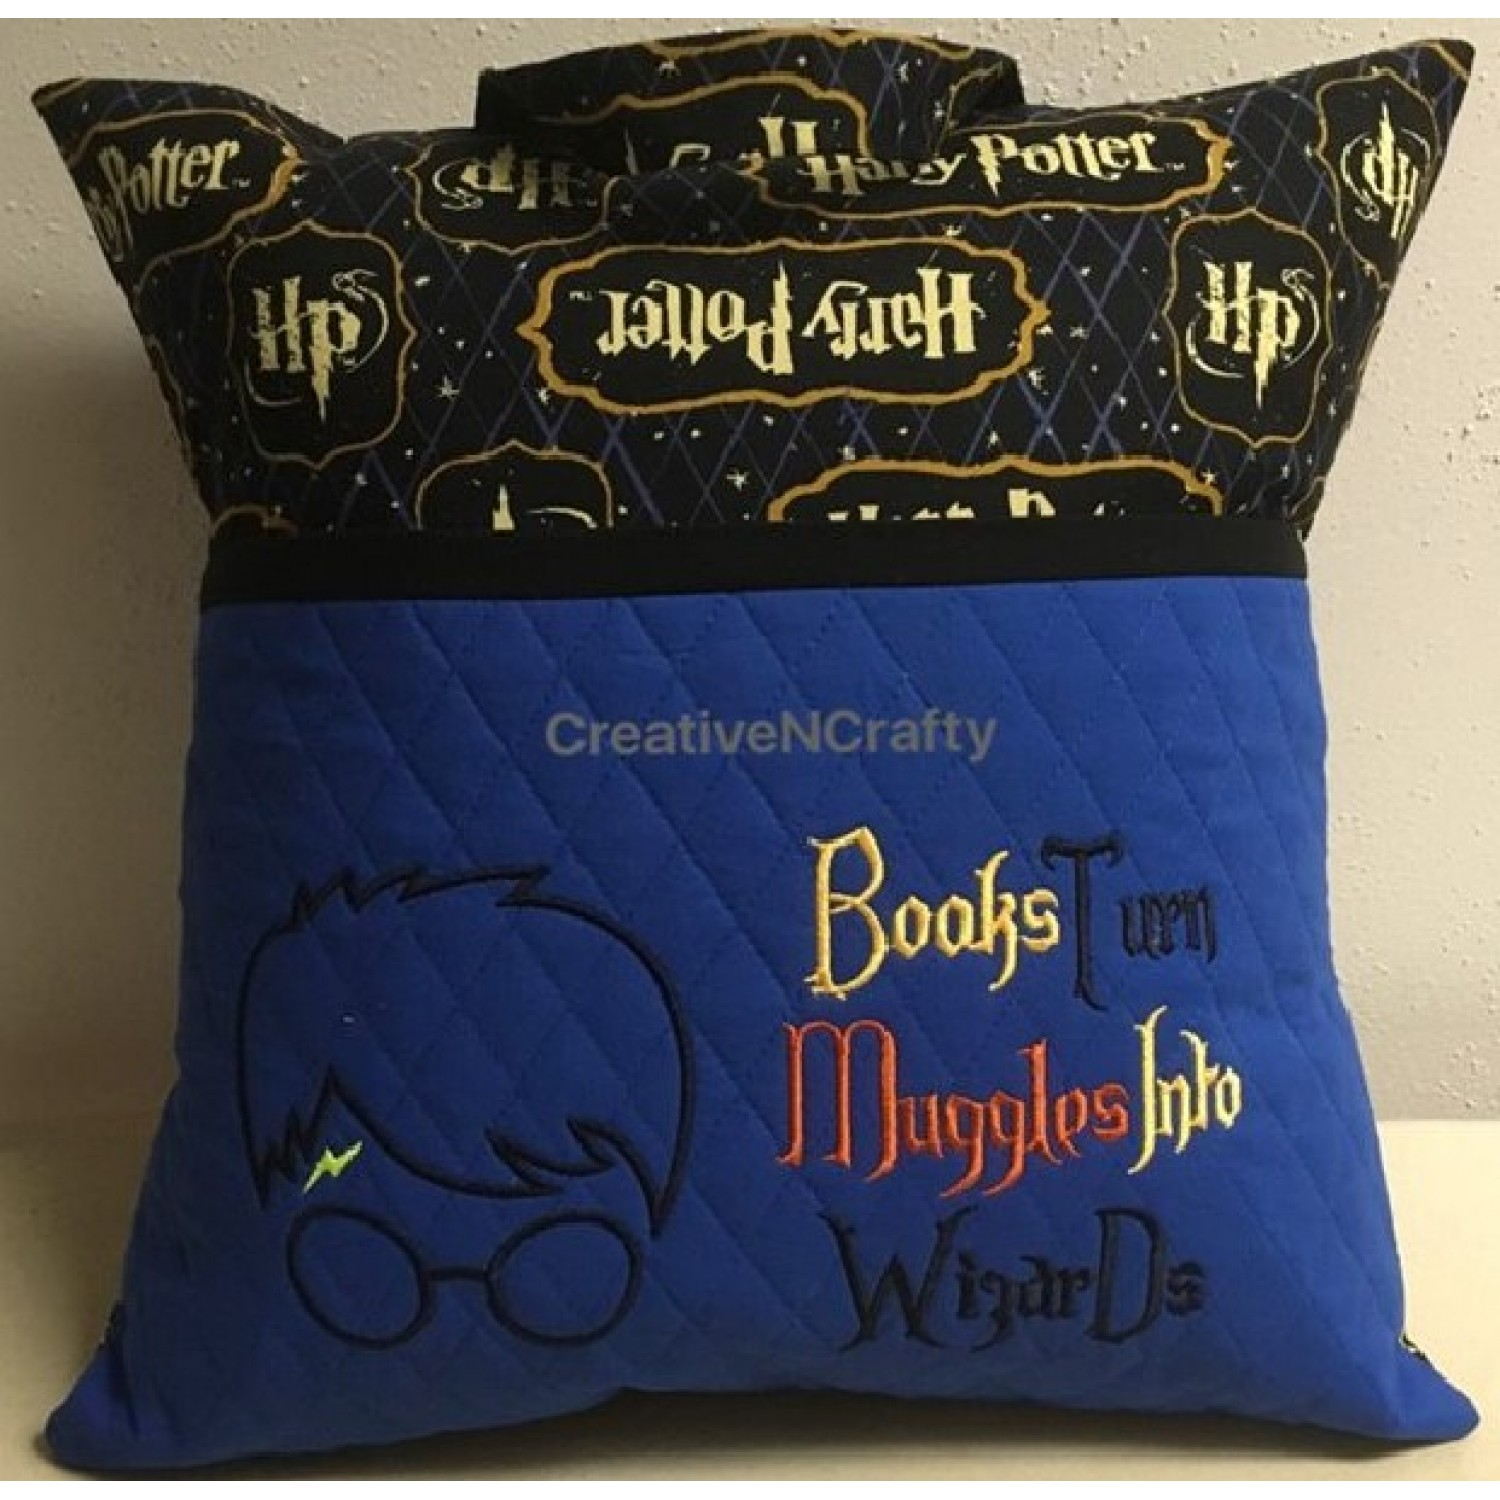 Harry Potter with Books Turn